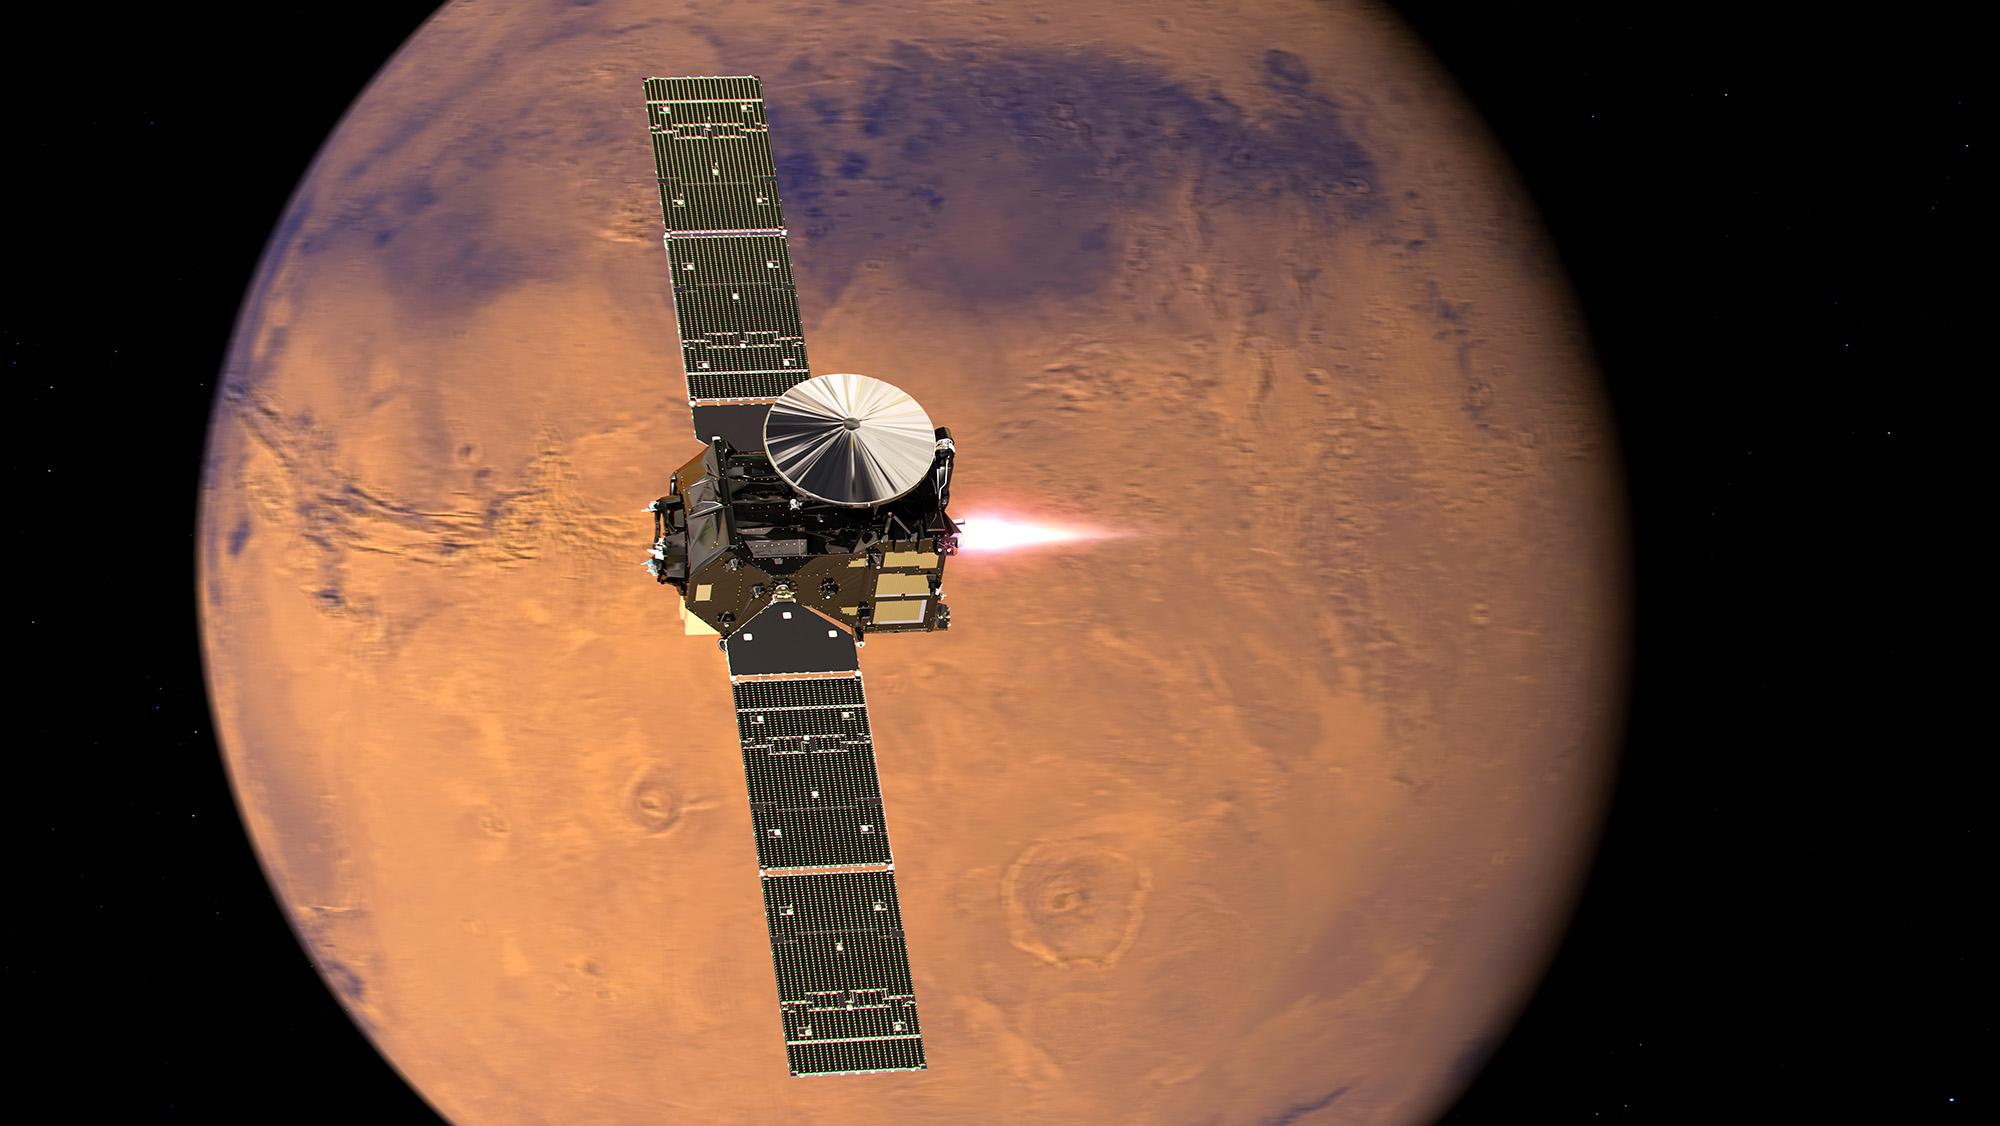 'Life on Mars' lander aims for risky touch down on red planet